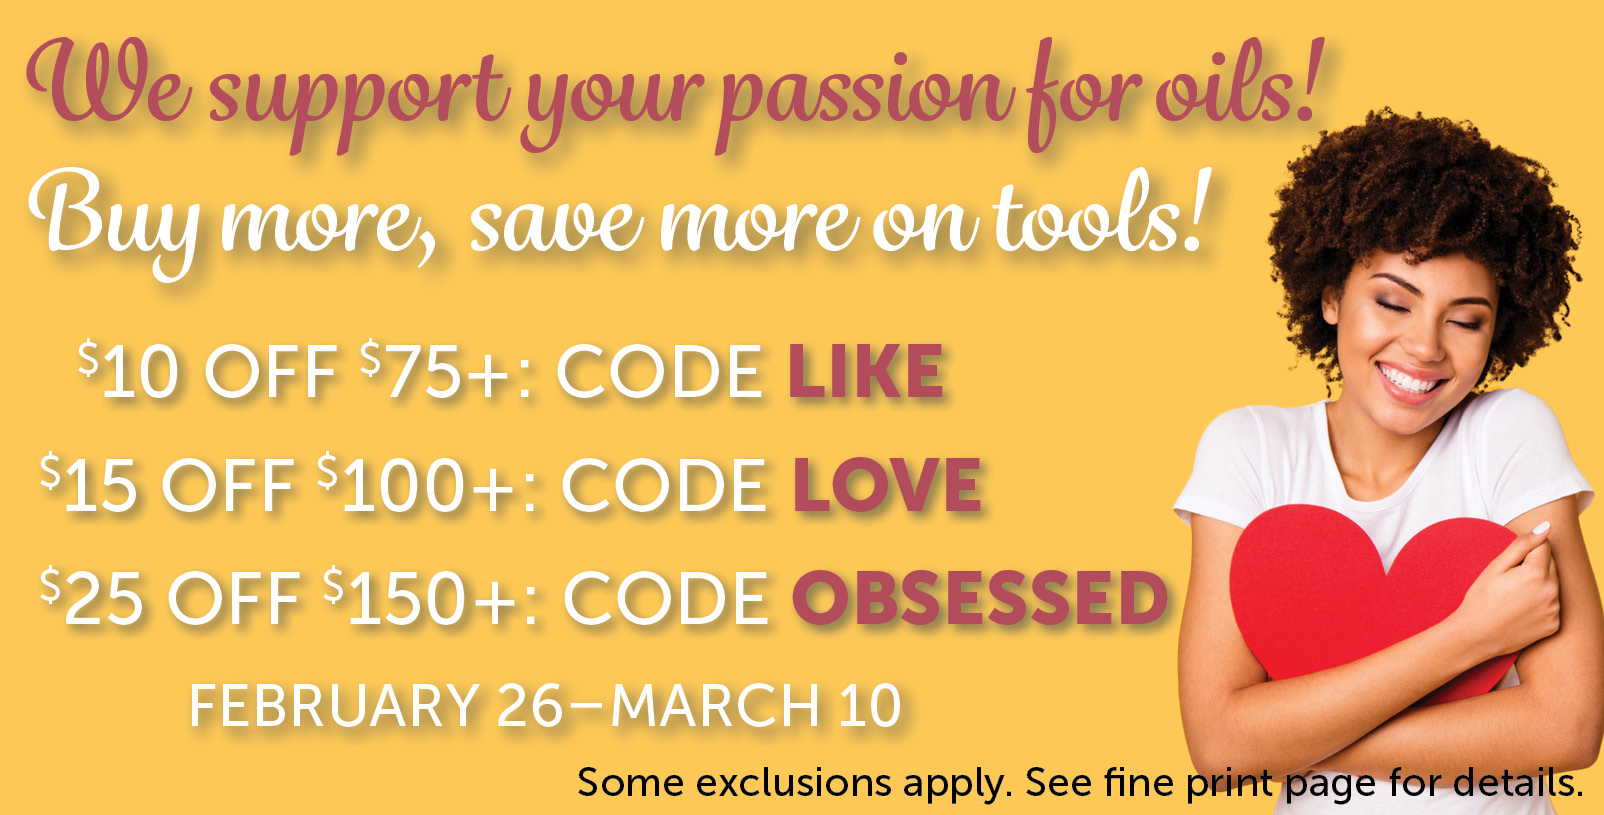 The more you buy, the more you save!  February 26–March 10